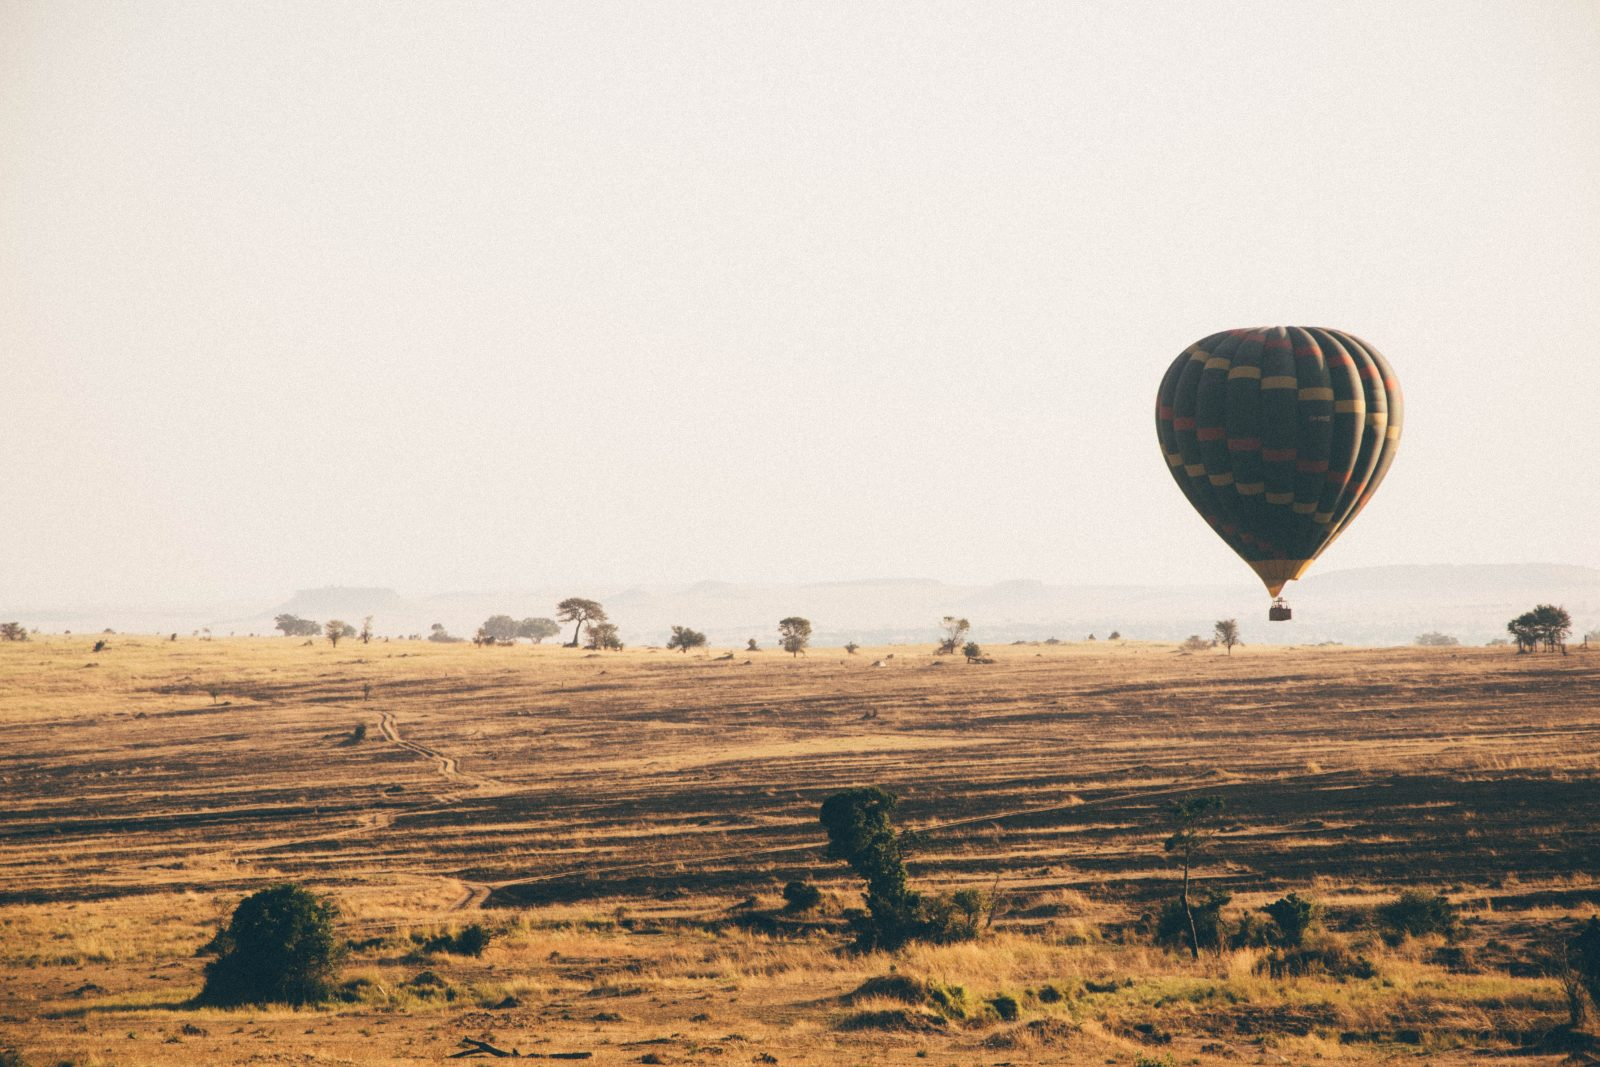 Hot air balloon in Tanzania